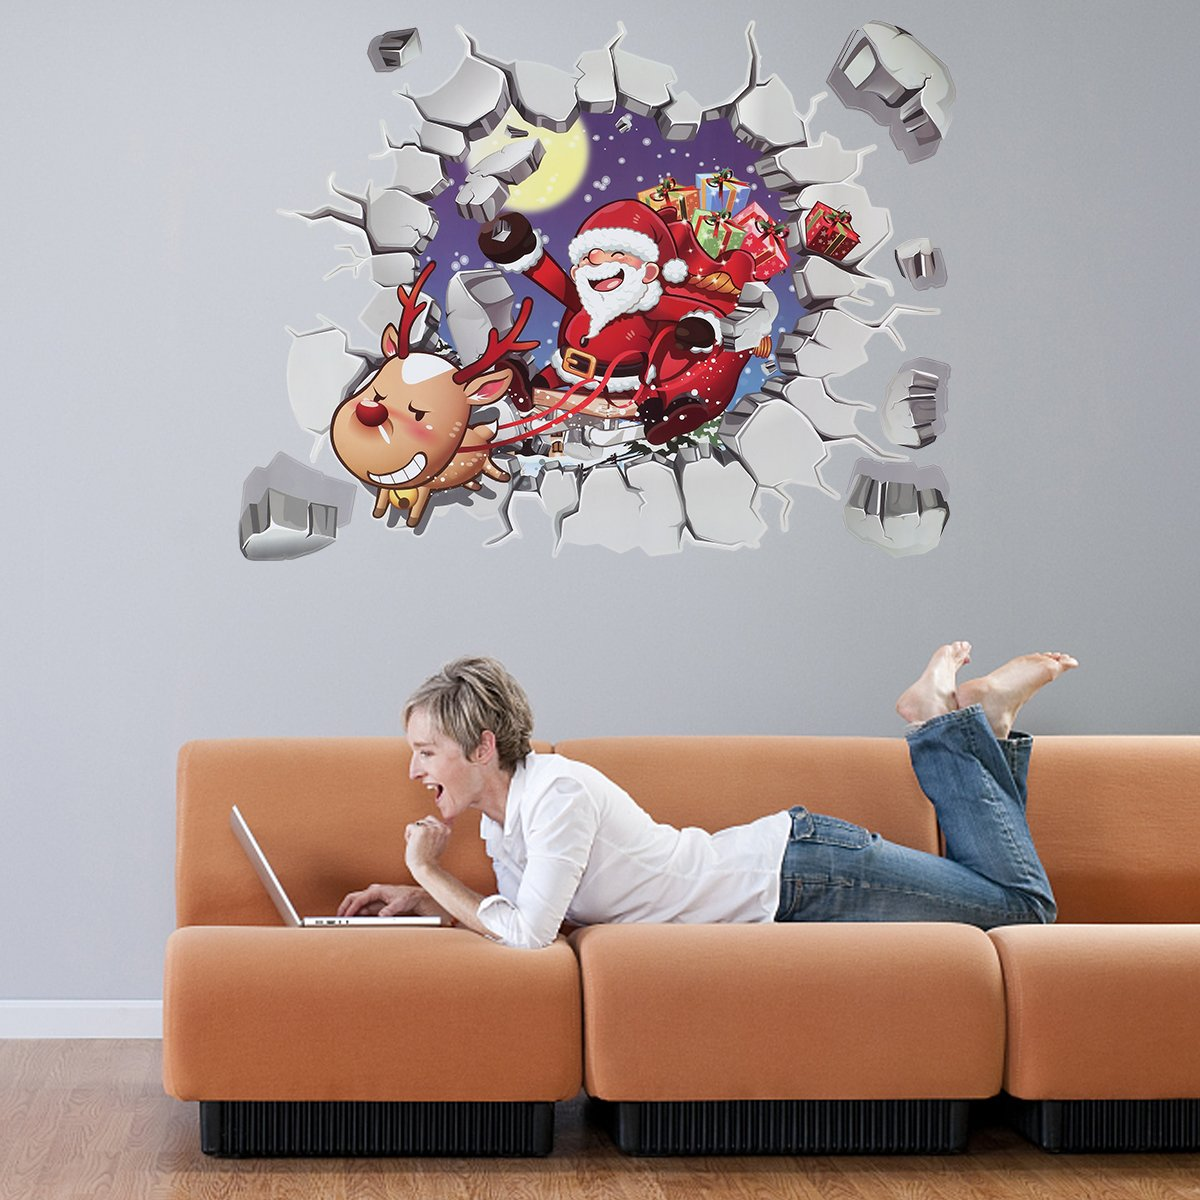 Christmas Wall Decals Stickers,3D Style Santa Claus Carrying Gifts Waterproof Environmental Protection PVC Removable DIY Sticker Wall Decals Sticker for Home Decor /Wall Decor